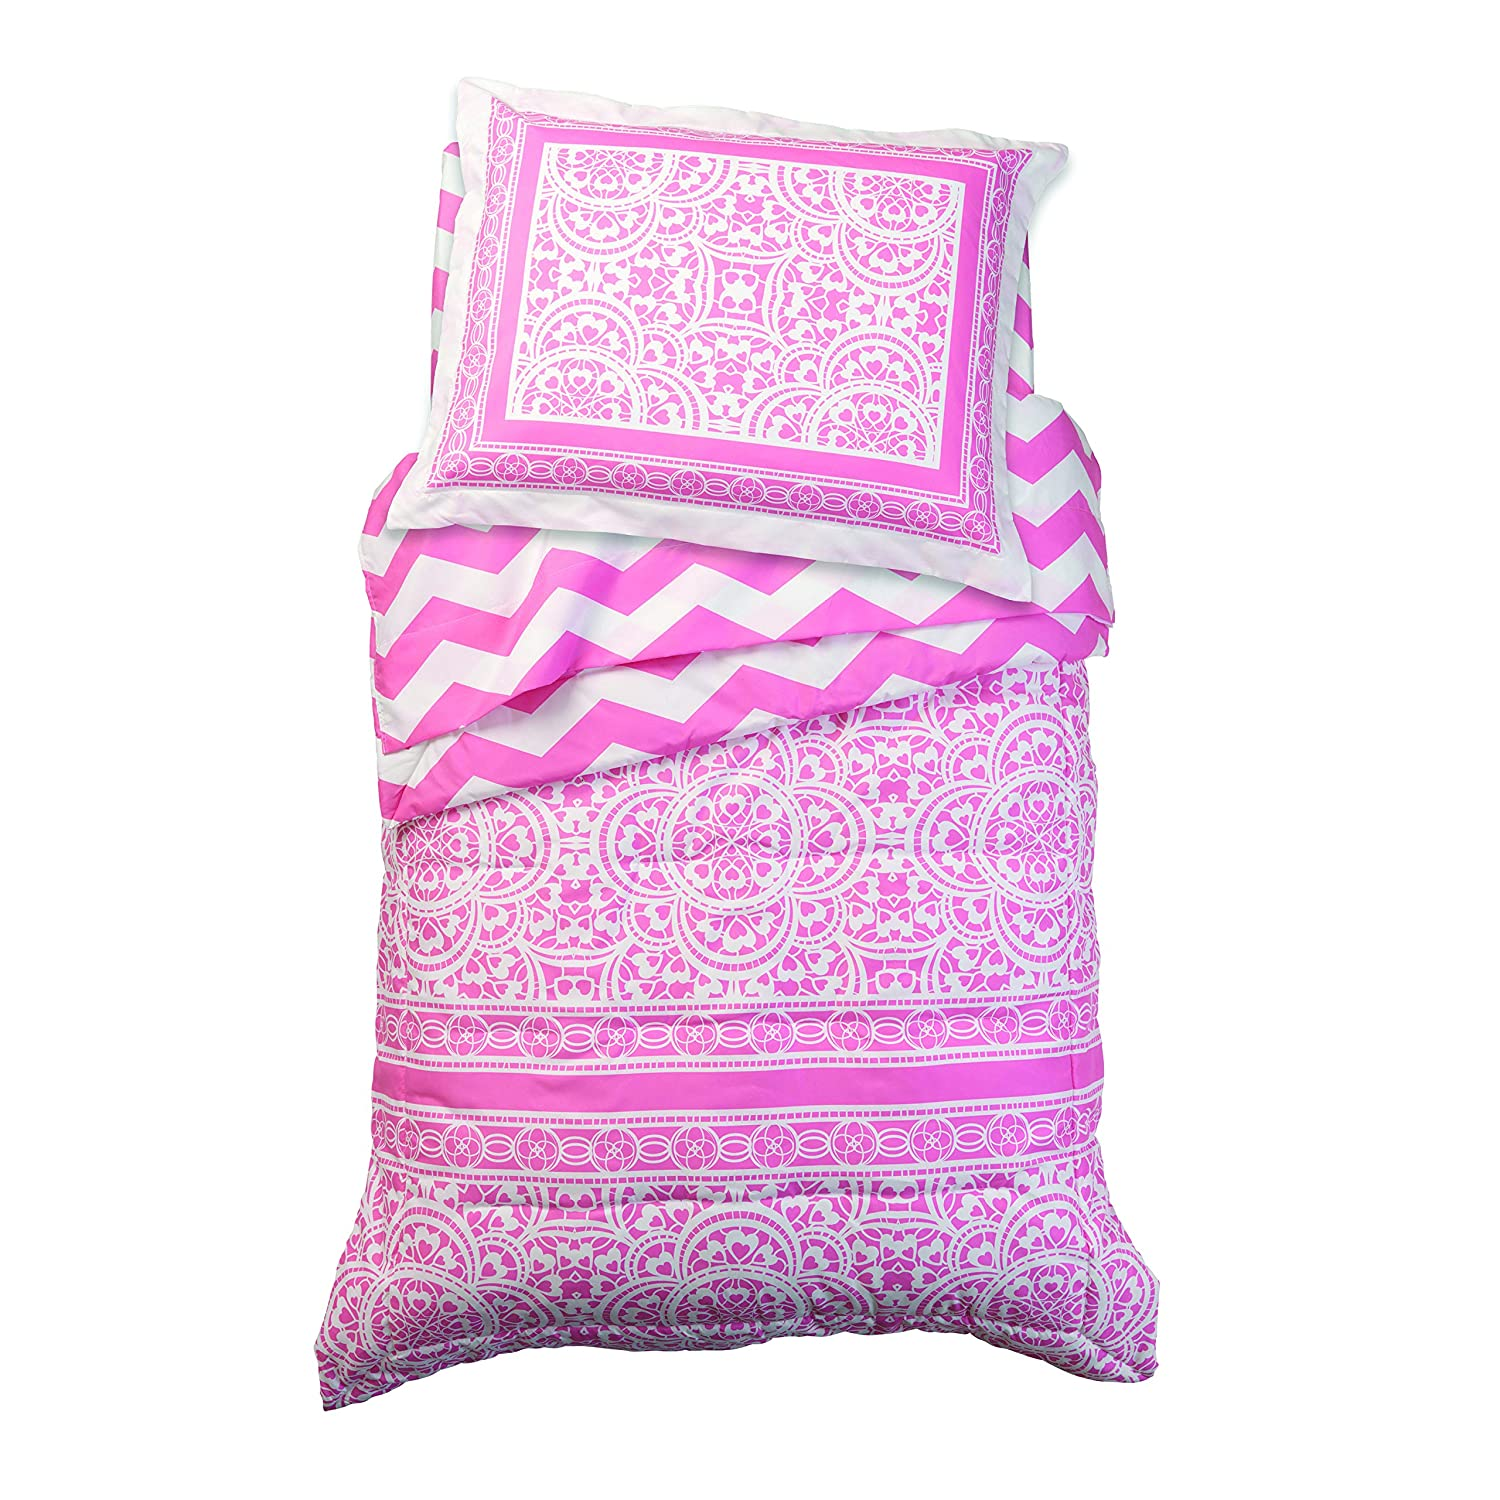 KidKraft Lace and Chevron Toddler Bedding - Pink